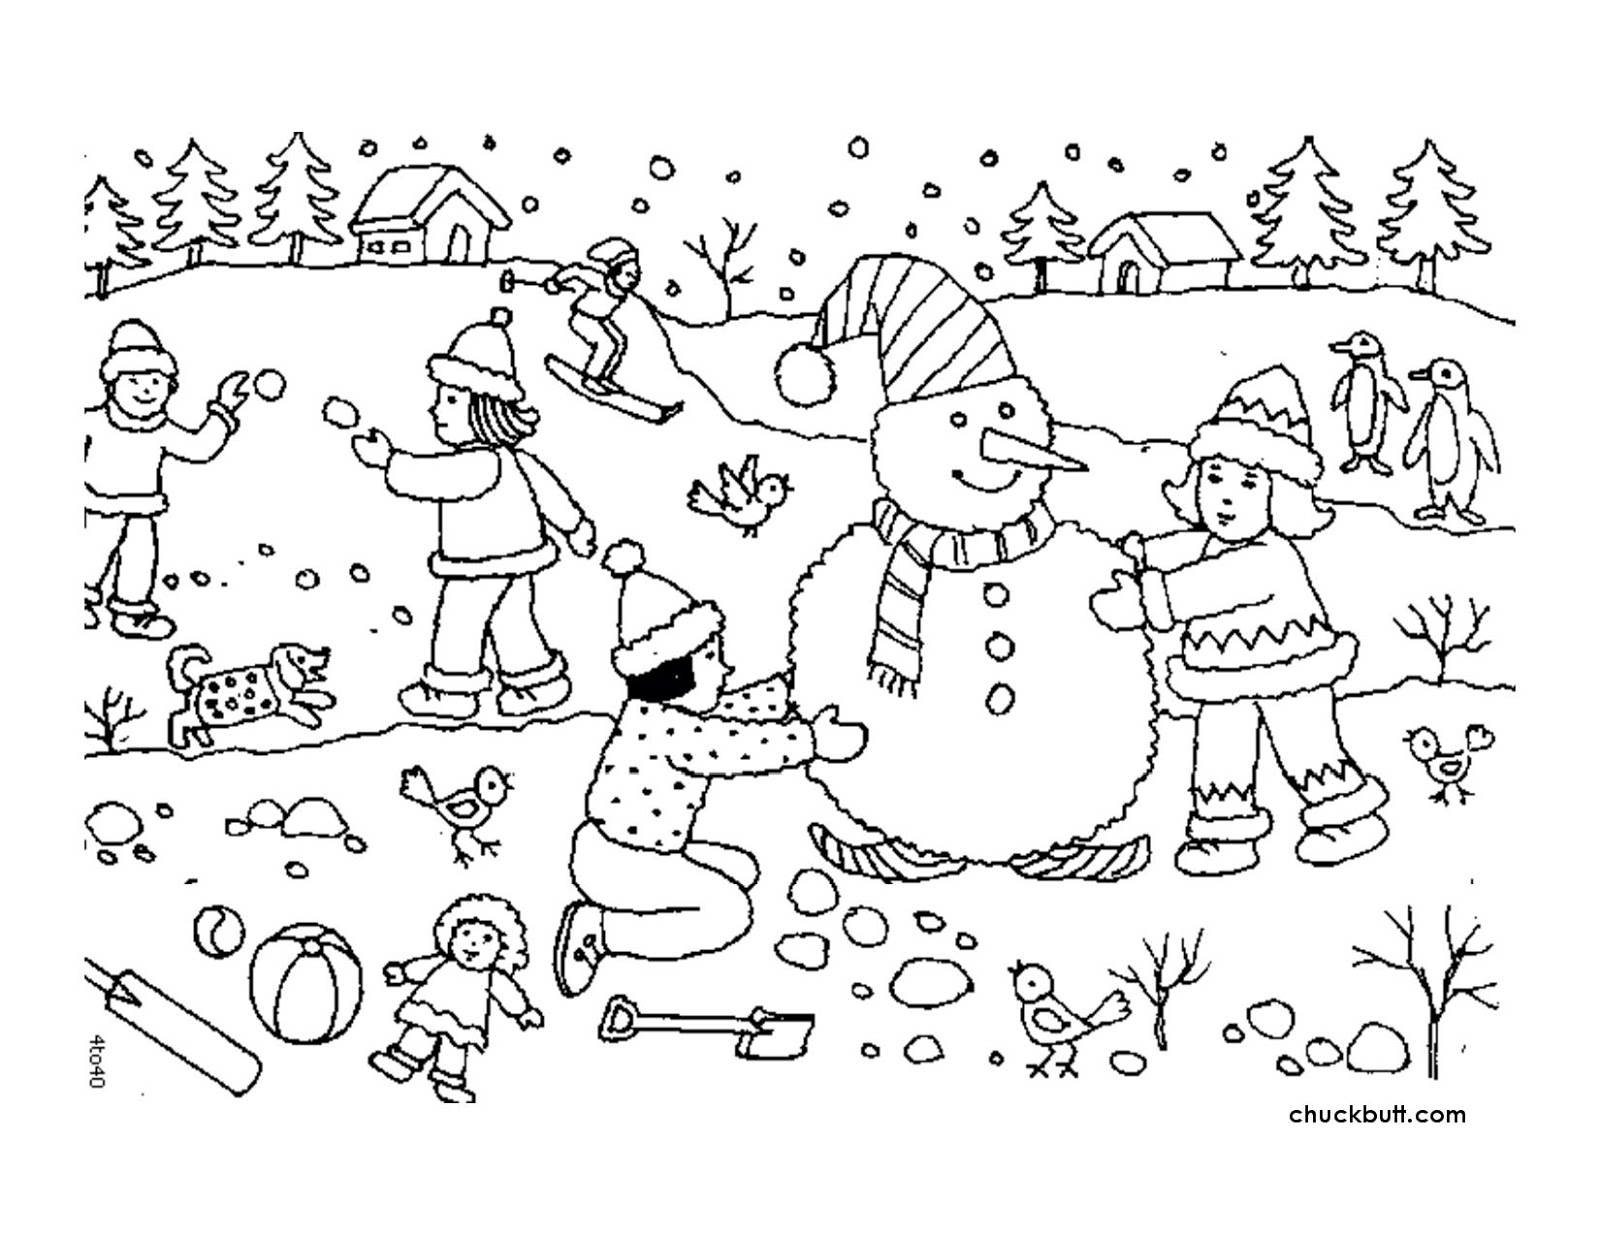 Worksheets Free Following Directions Worksheets the crafty ot free winter worksheets that i made for my elementary aged students feel to print use and share